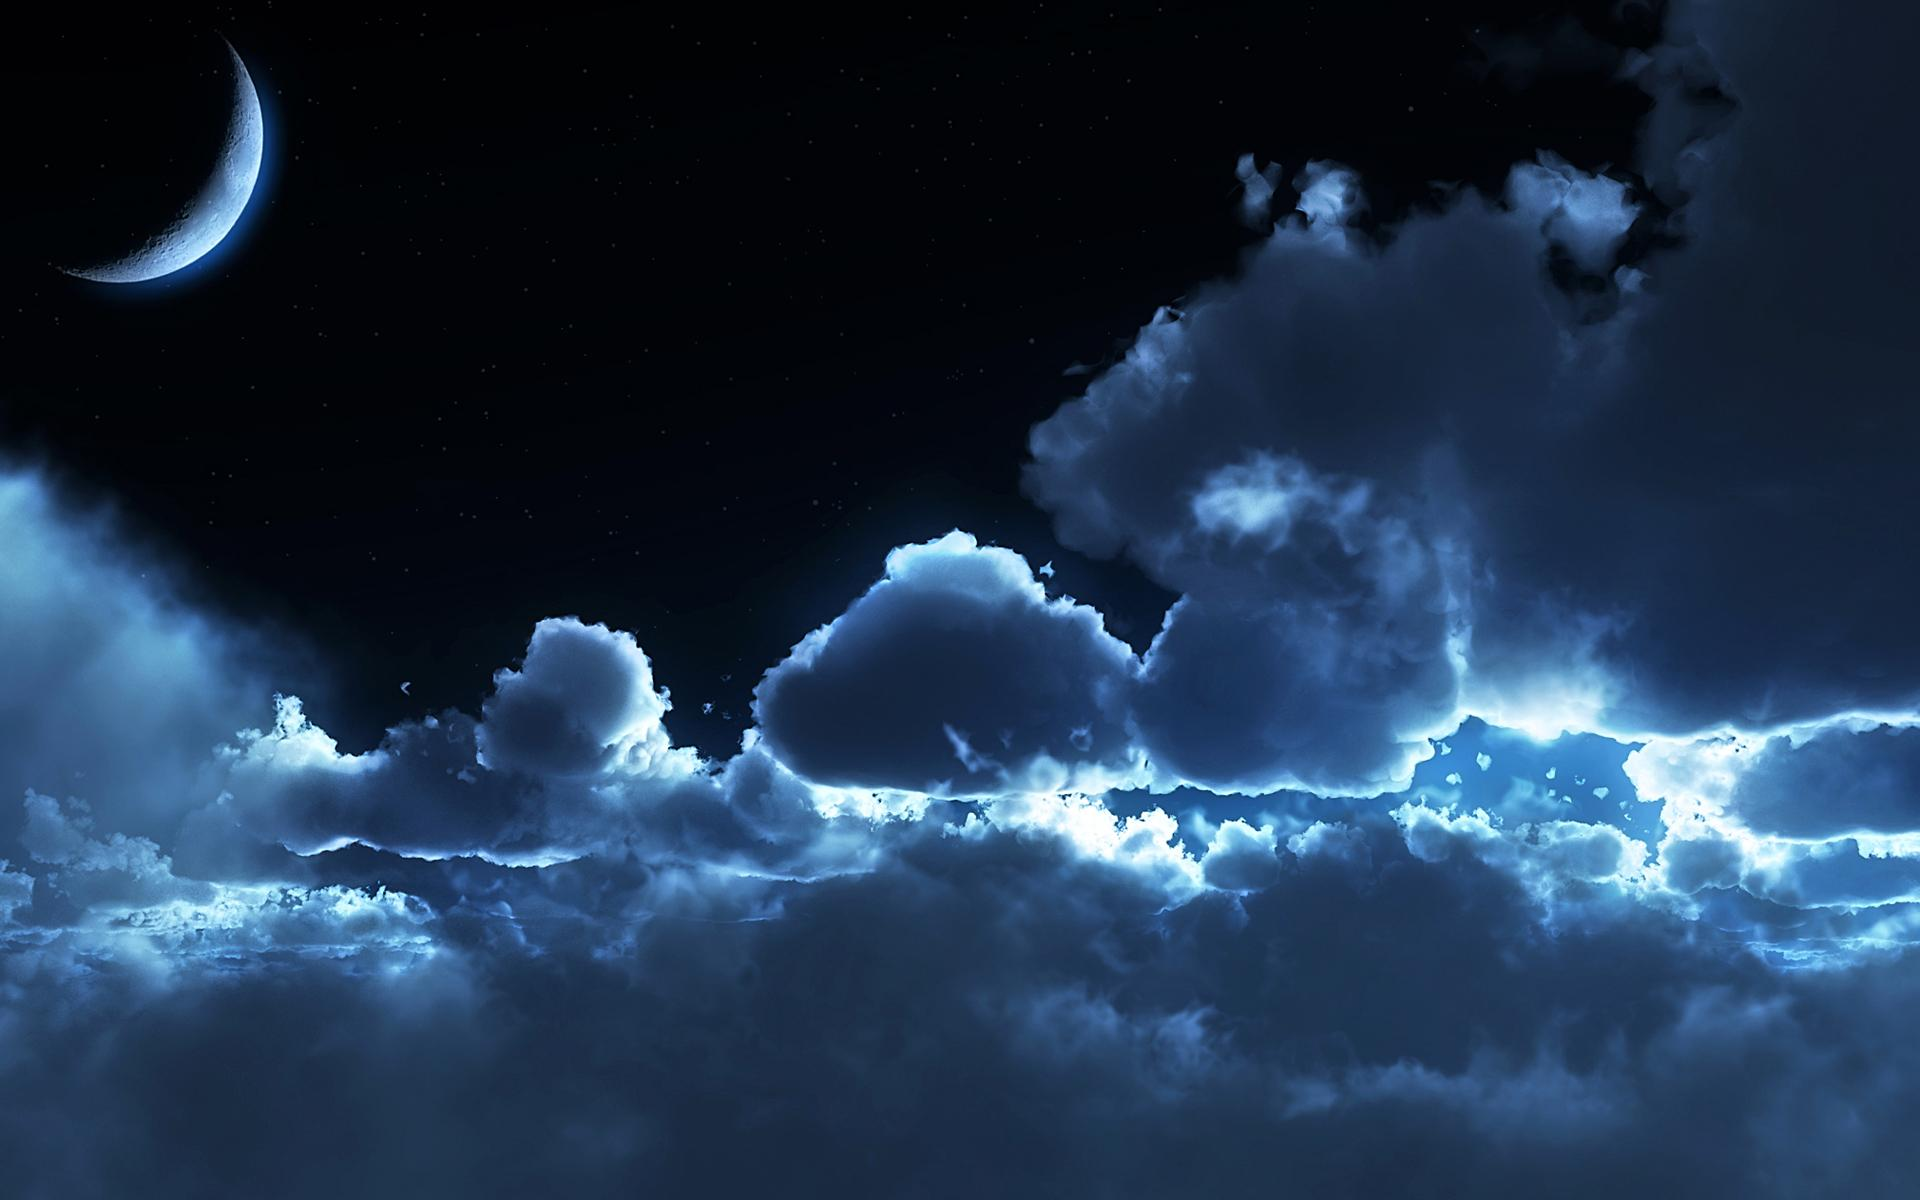 Above The Clouds Wallpapers, Above The Clouds Myspace Backgrounds, Above The Clouds Backgrounds For Myspace